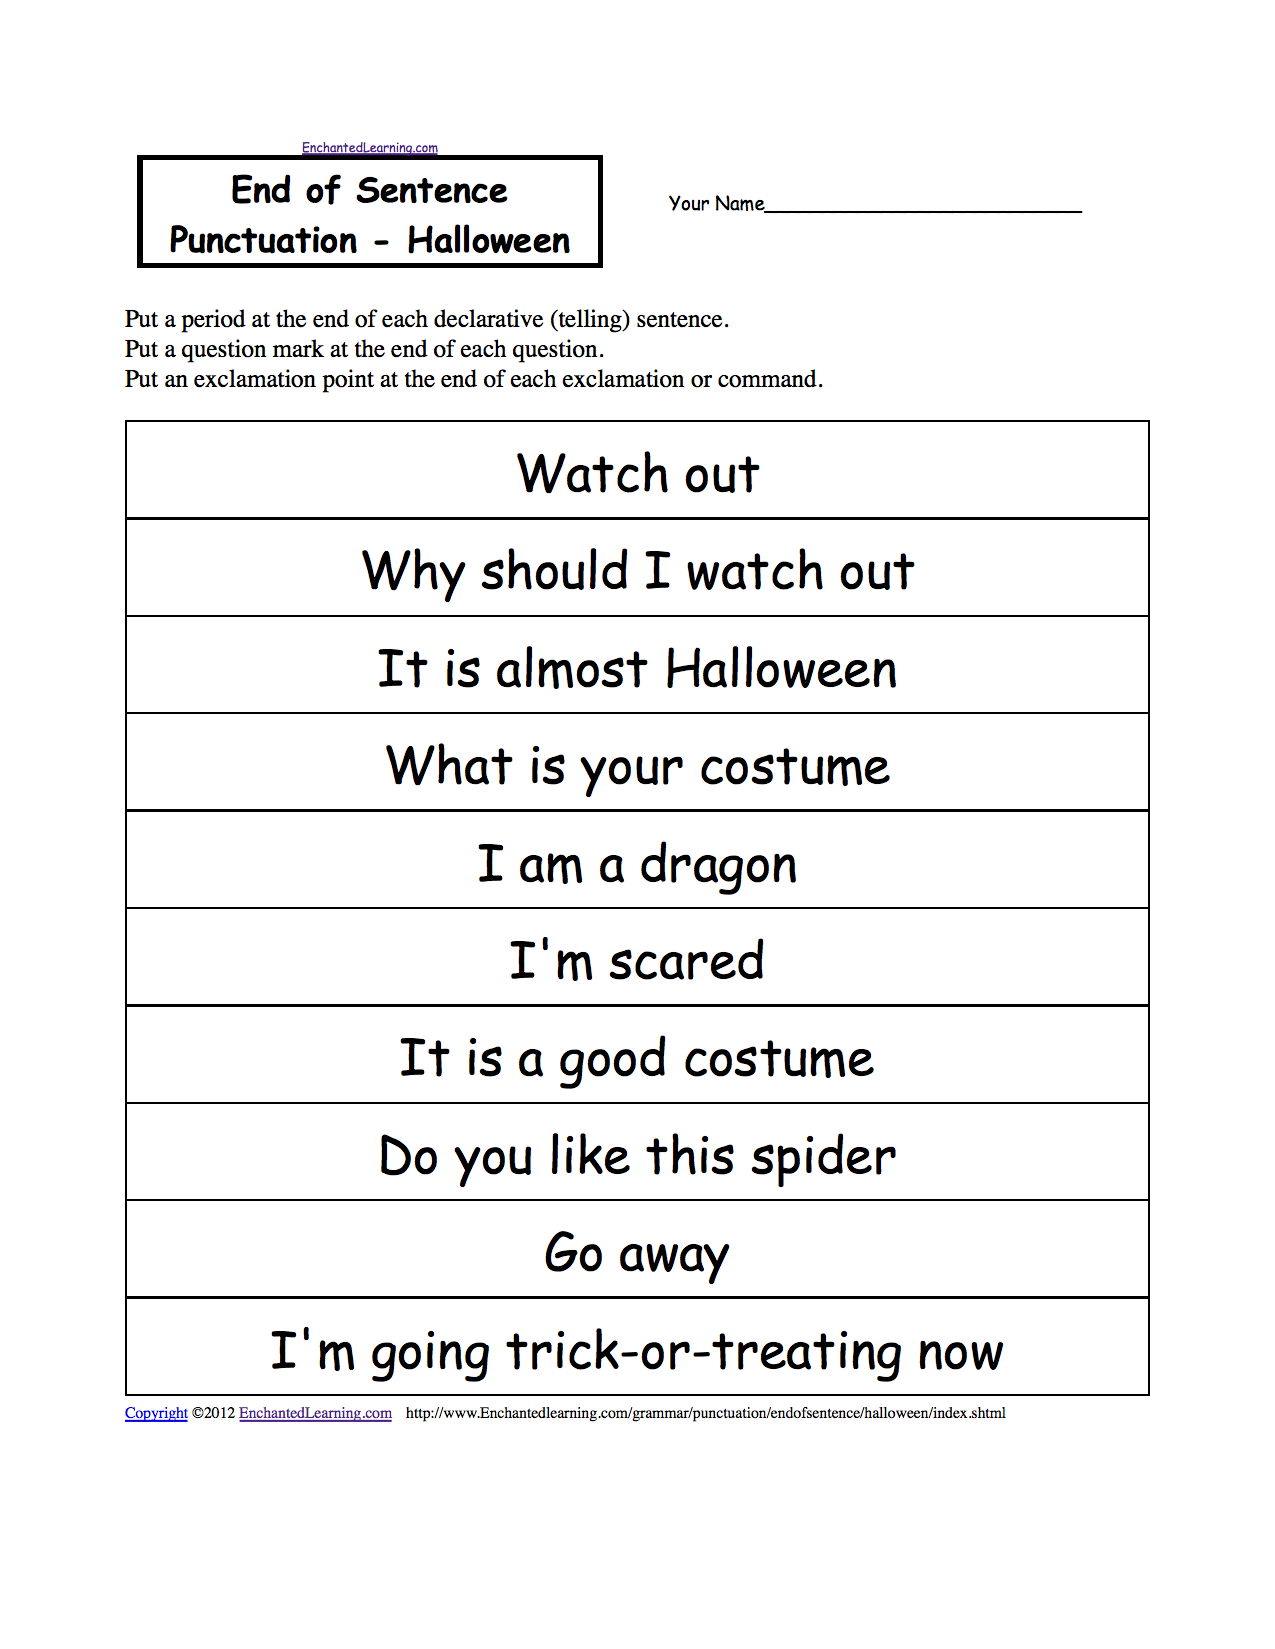 Printables Kindergarten Punctuation Worksheets end of sentence punctuation printable worksheets halloween